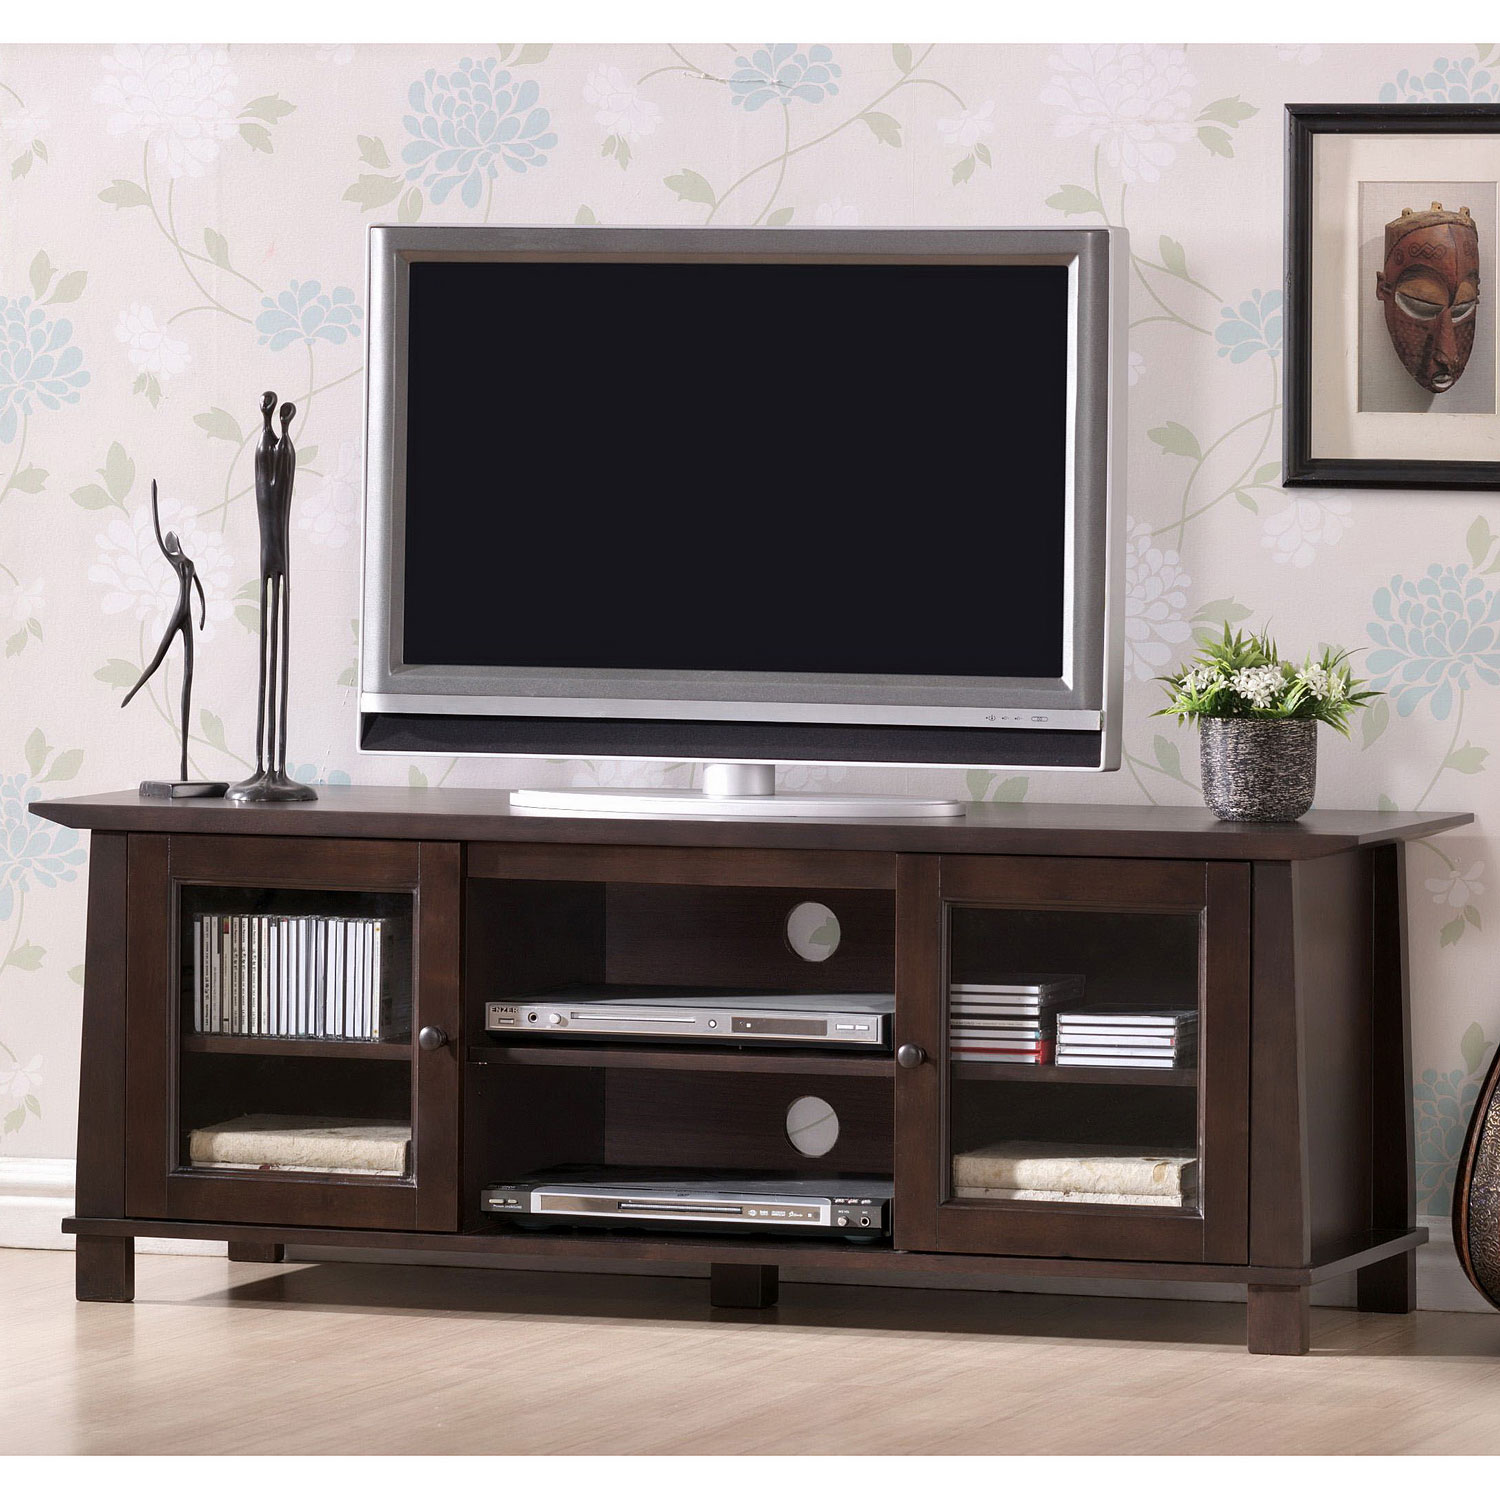 Baxton studio havana modern tv stand by wholesale for Mobilier stand